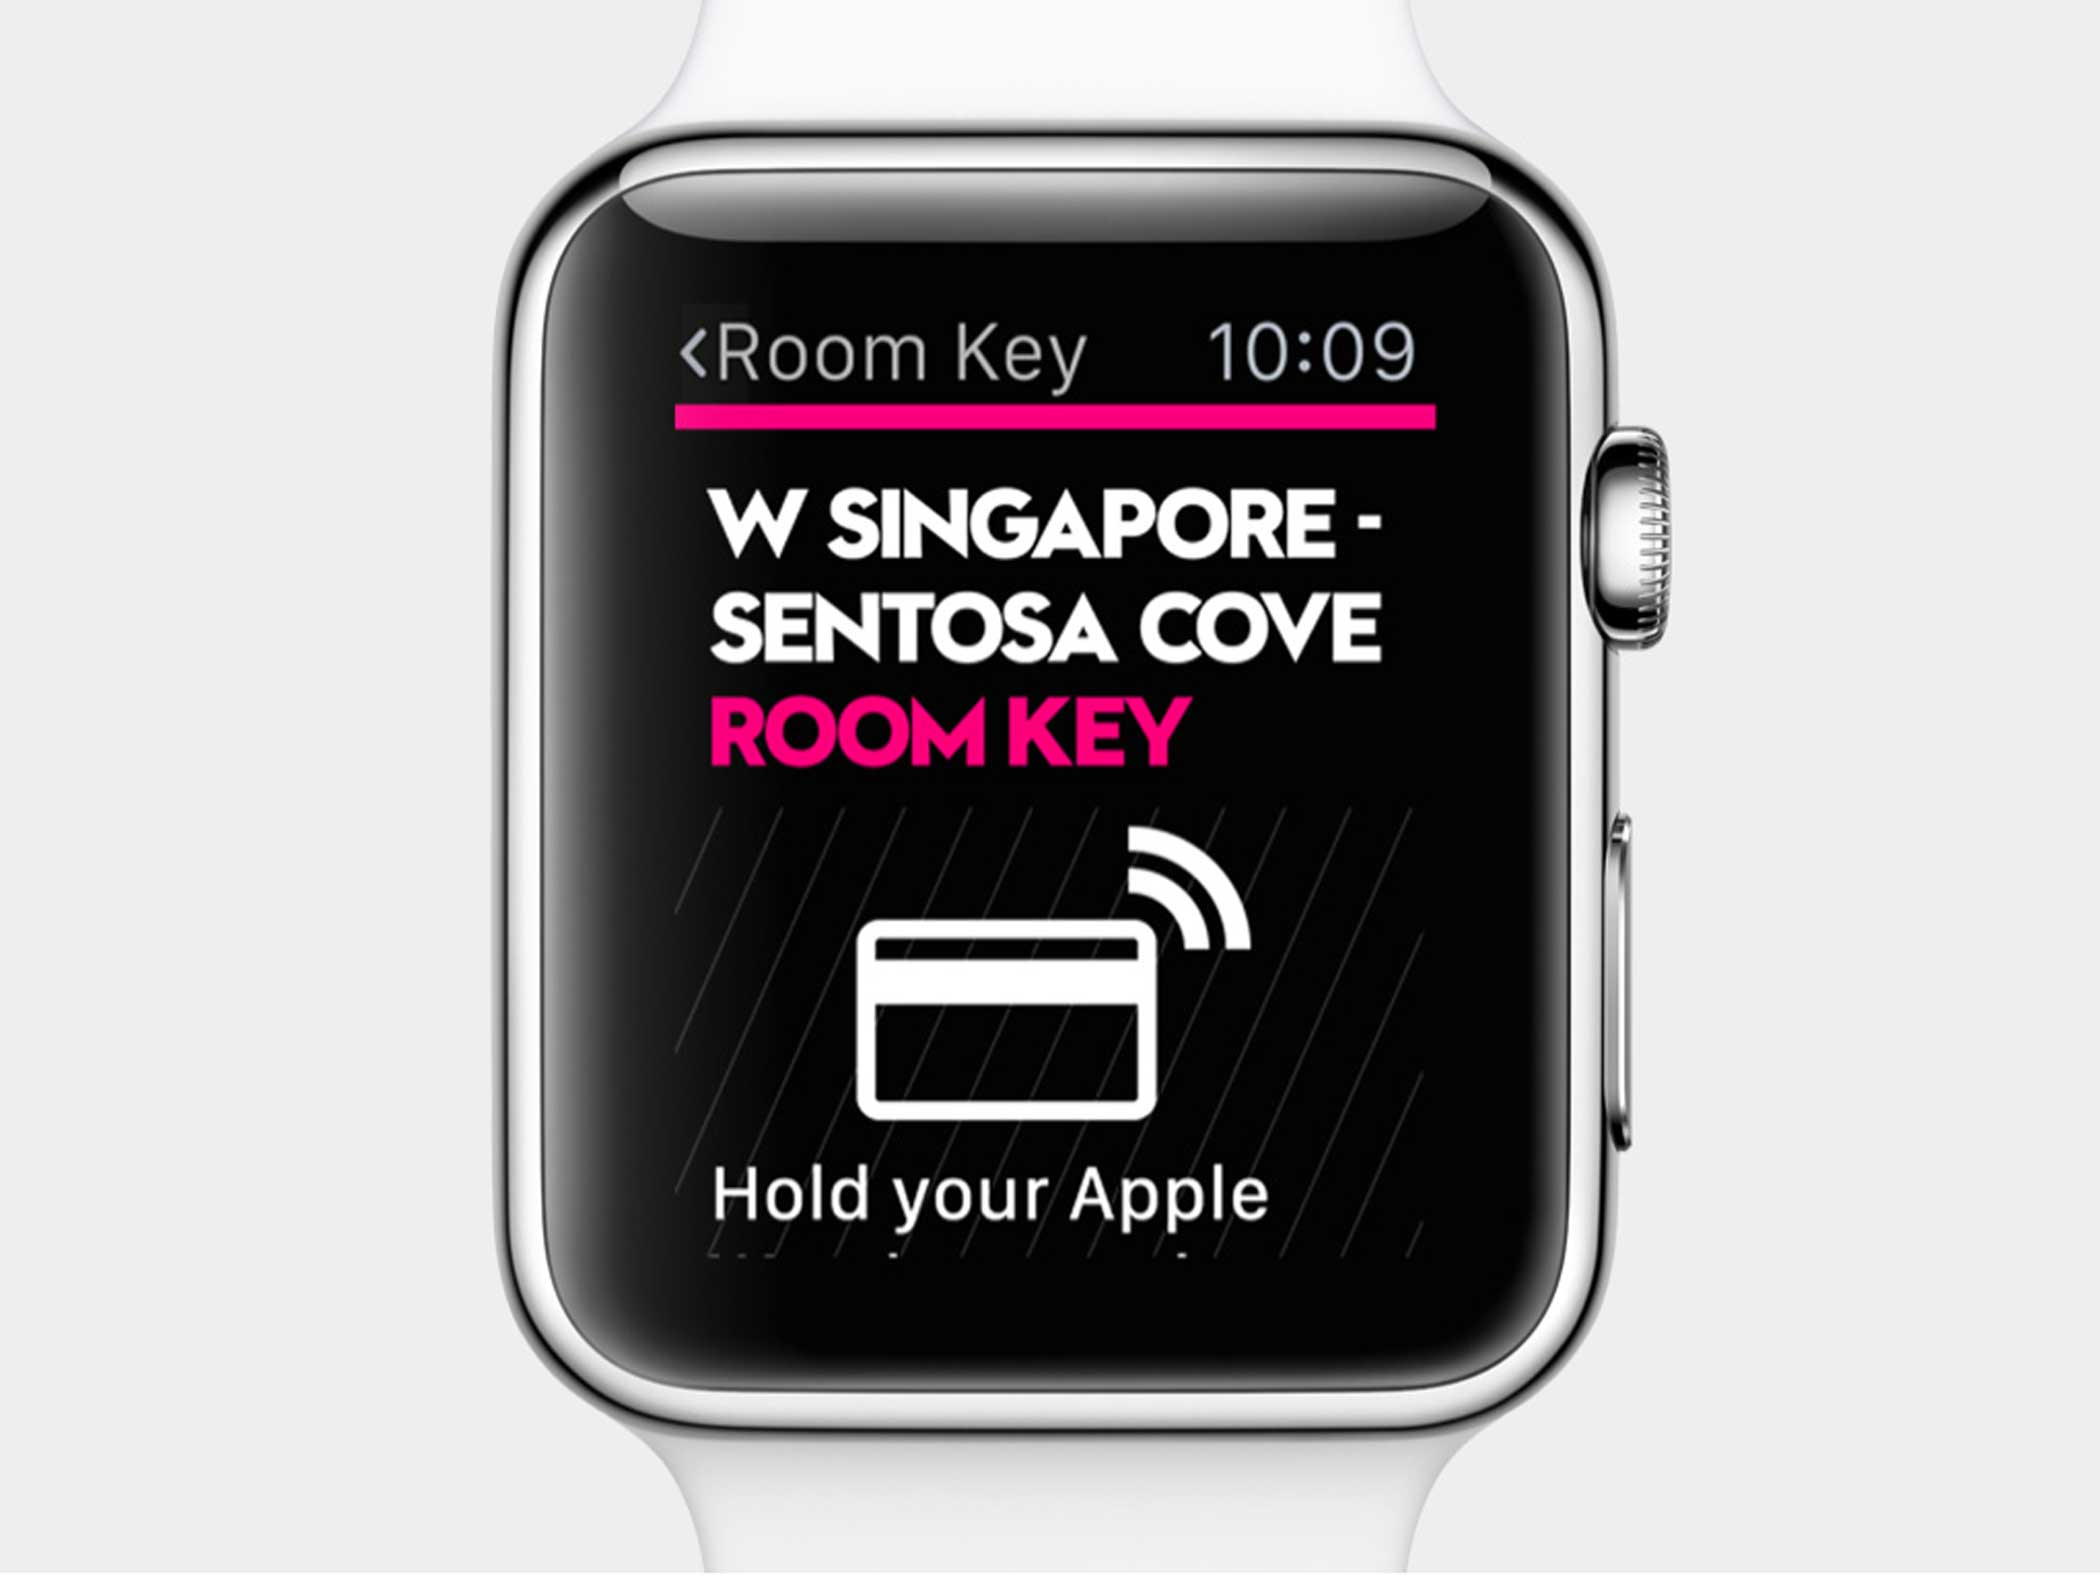 Check into your hotel and unlock your room using the SPG app.